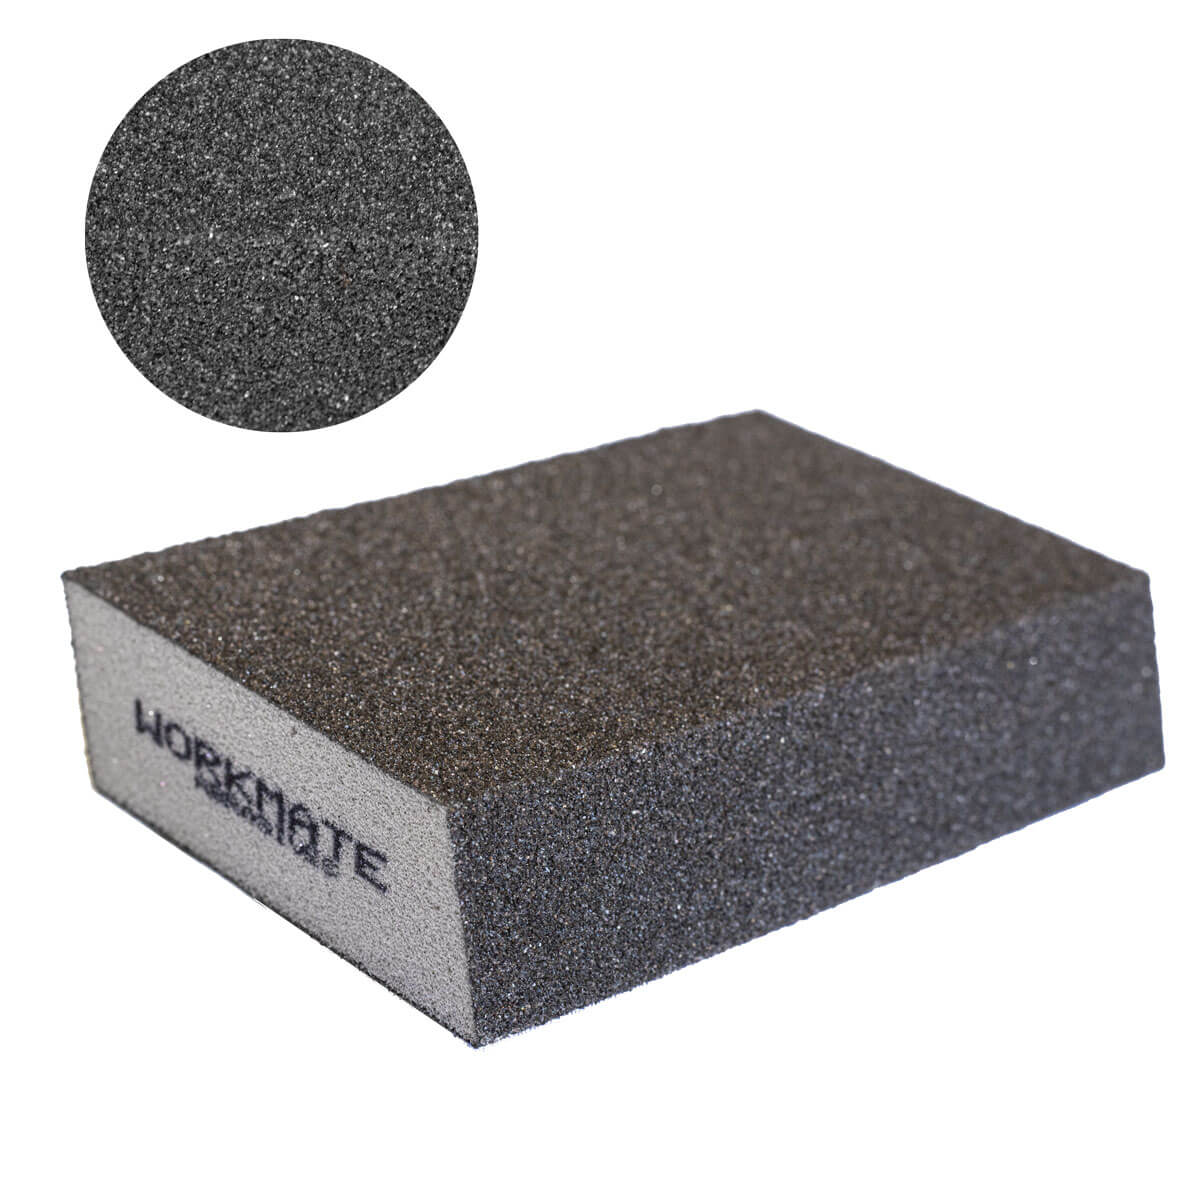 Sanding Sponges Angle Medium Workmate